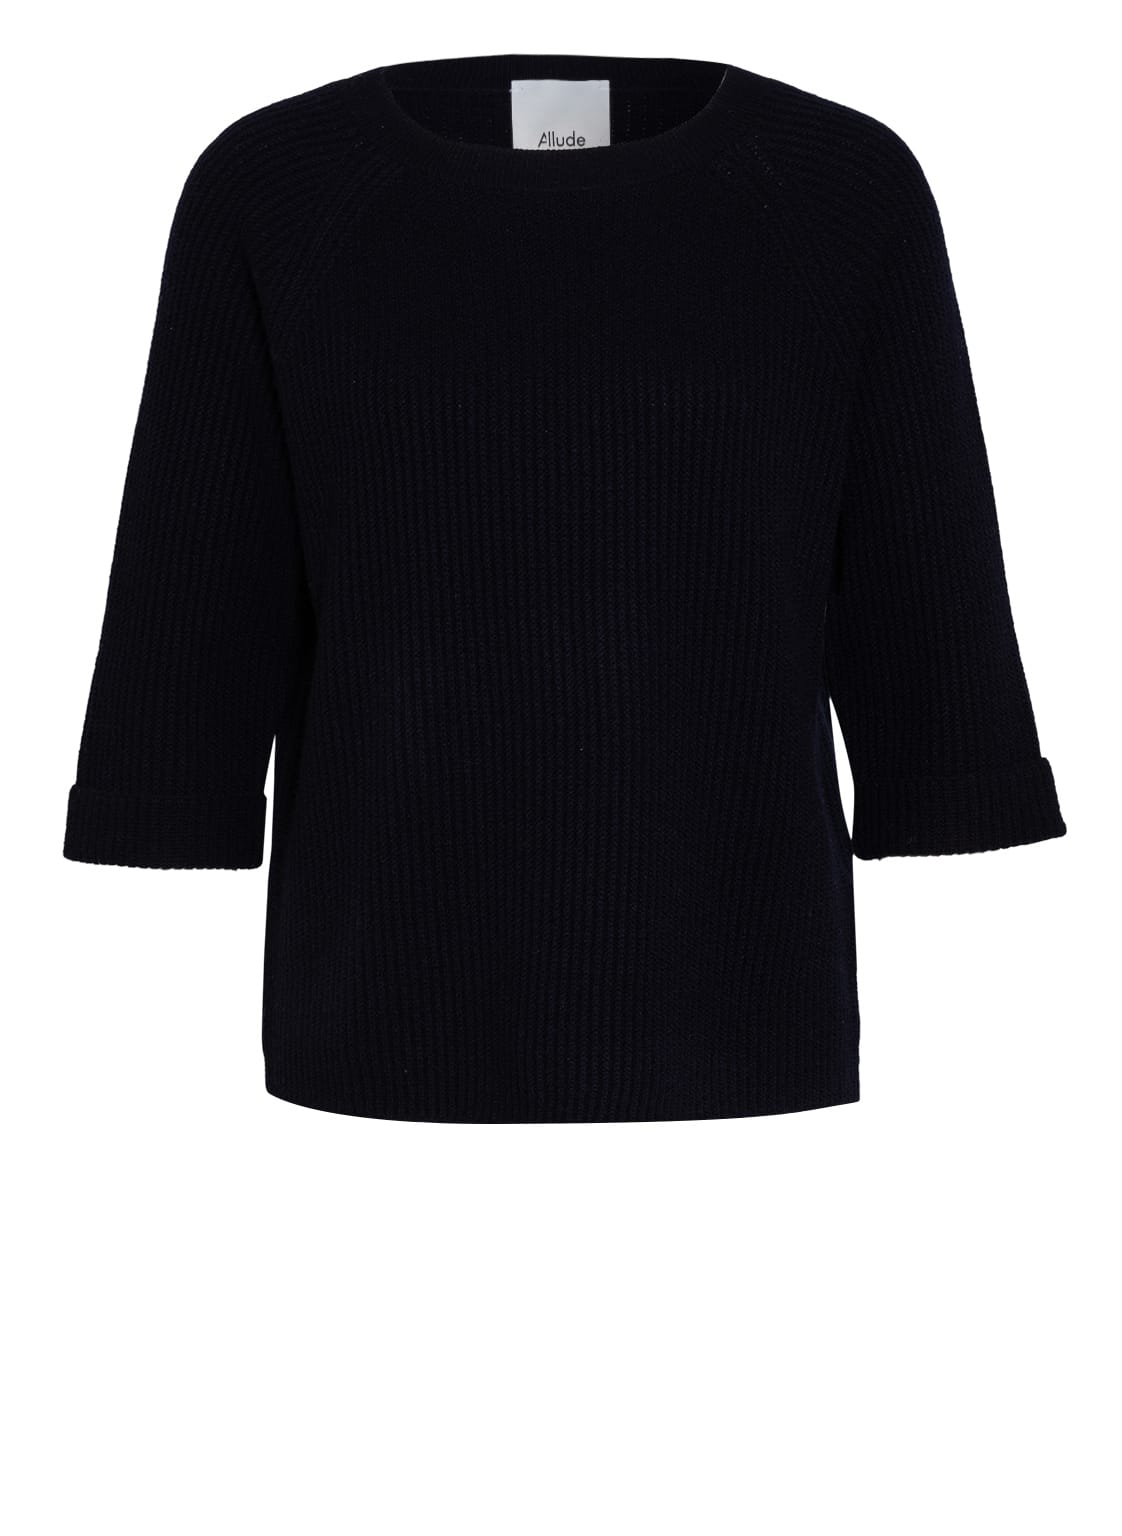 Image of Allude Cashmere-Pullover Mit 3/4-Arm blau